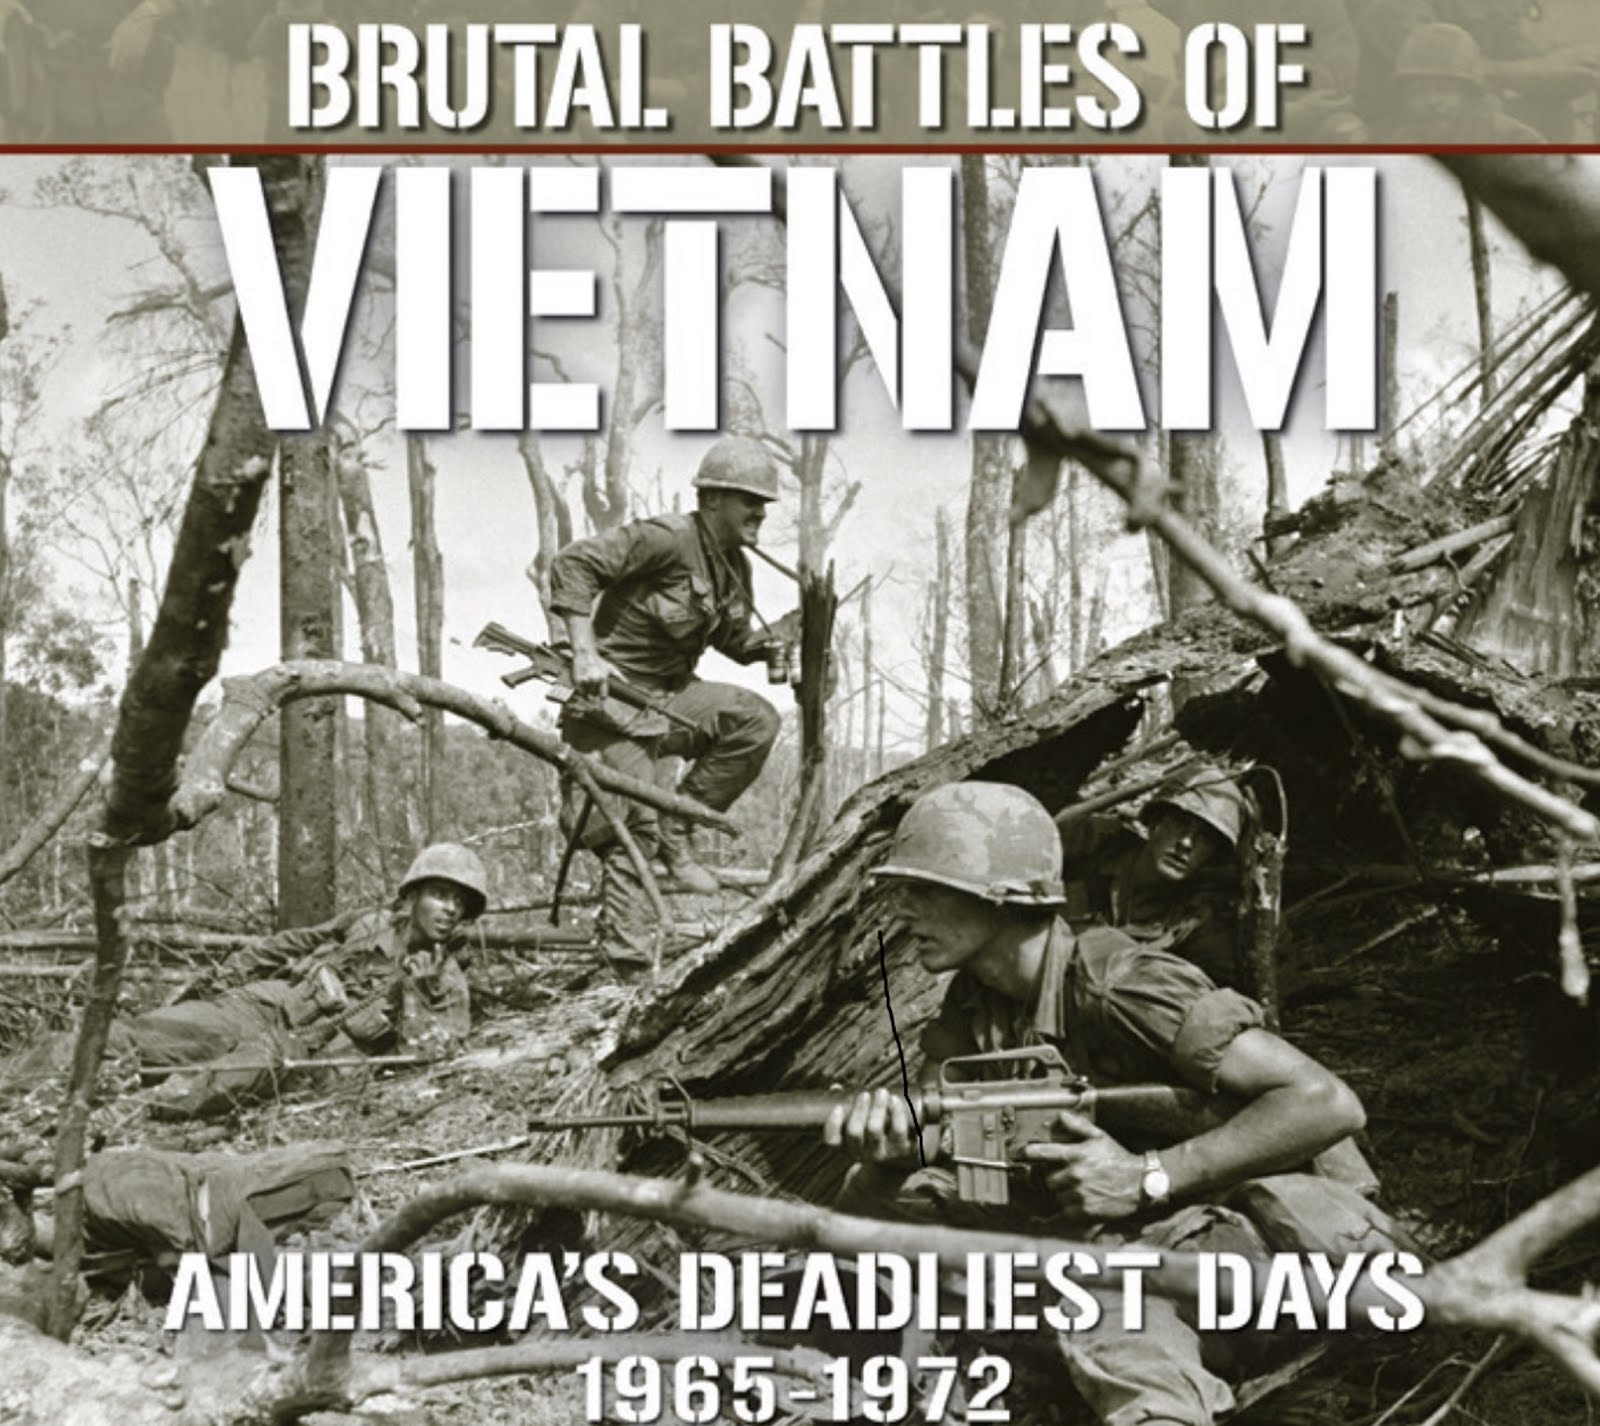 BRUTAL BATTLES OF VIETNAM